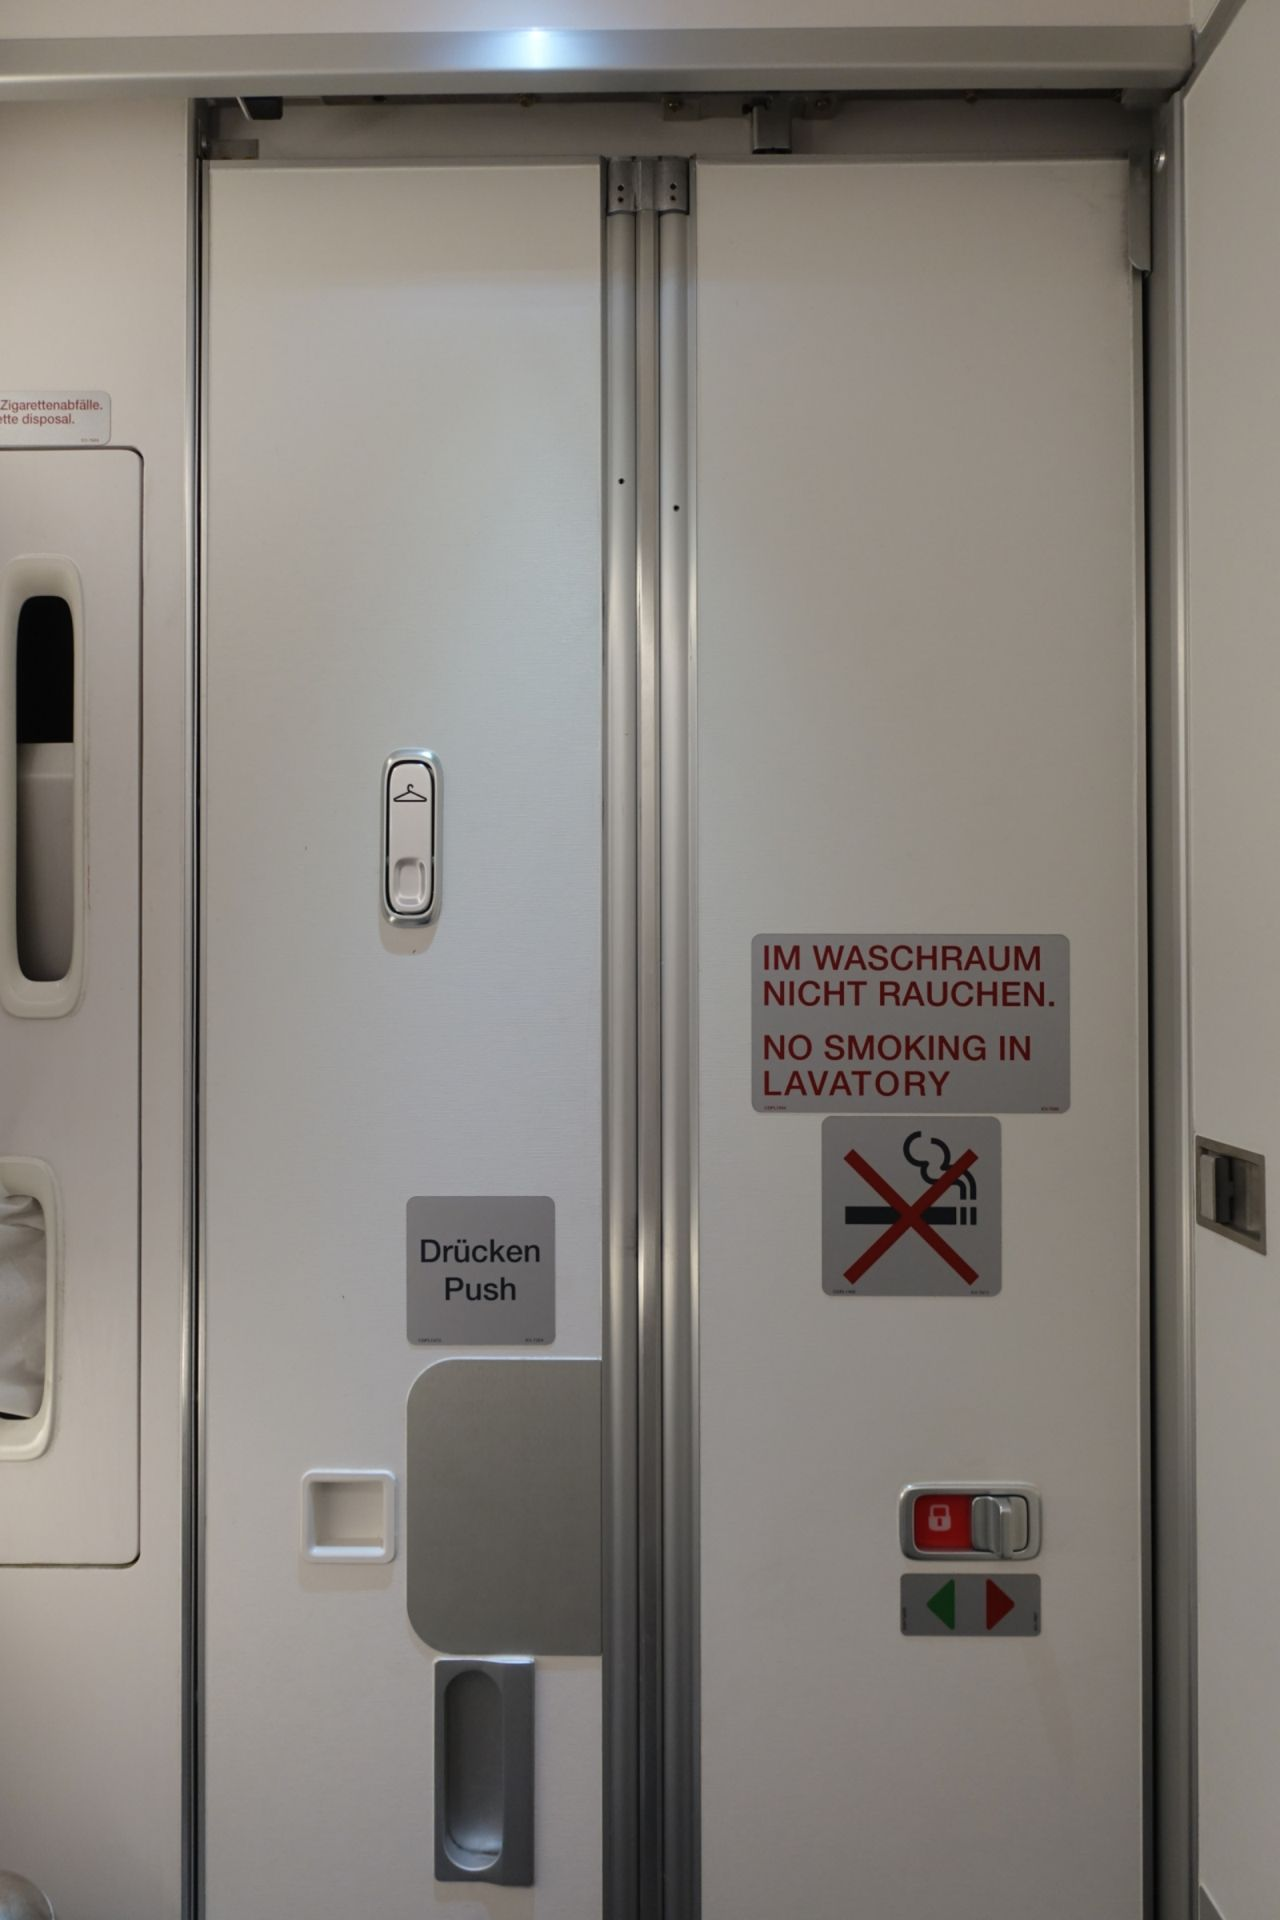 There are two lavatories at the back of plane took one in